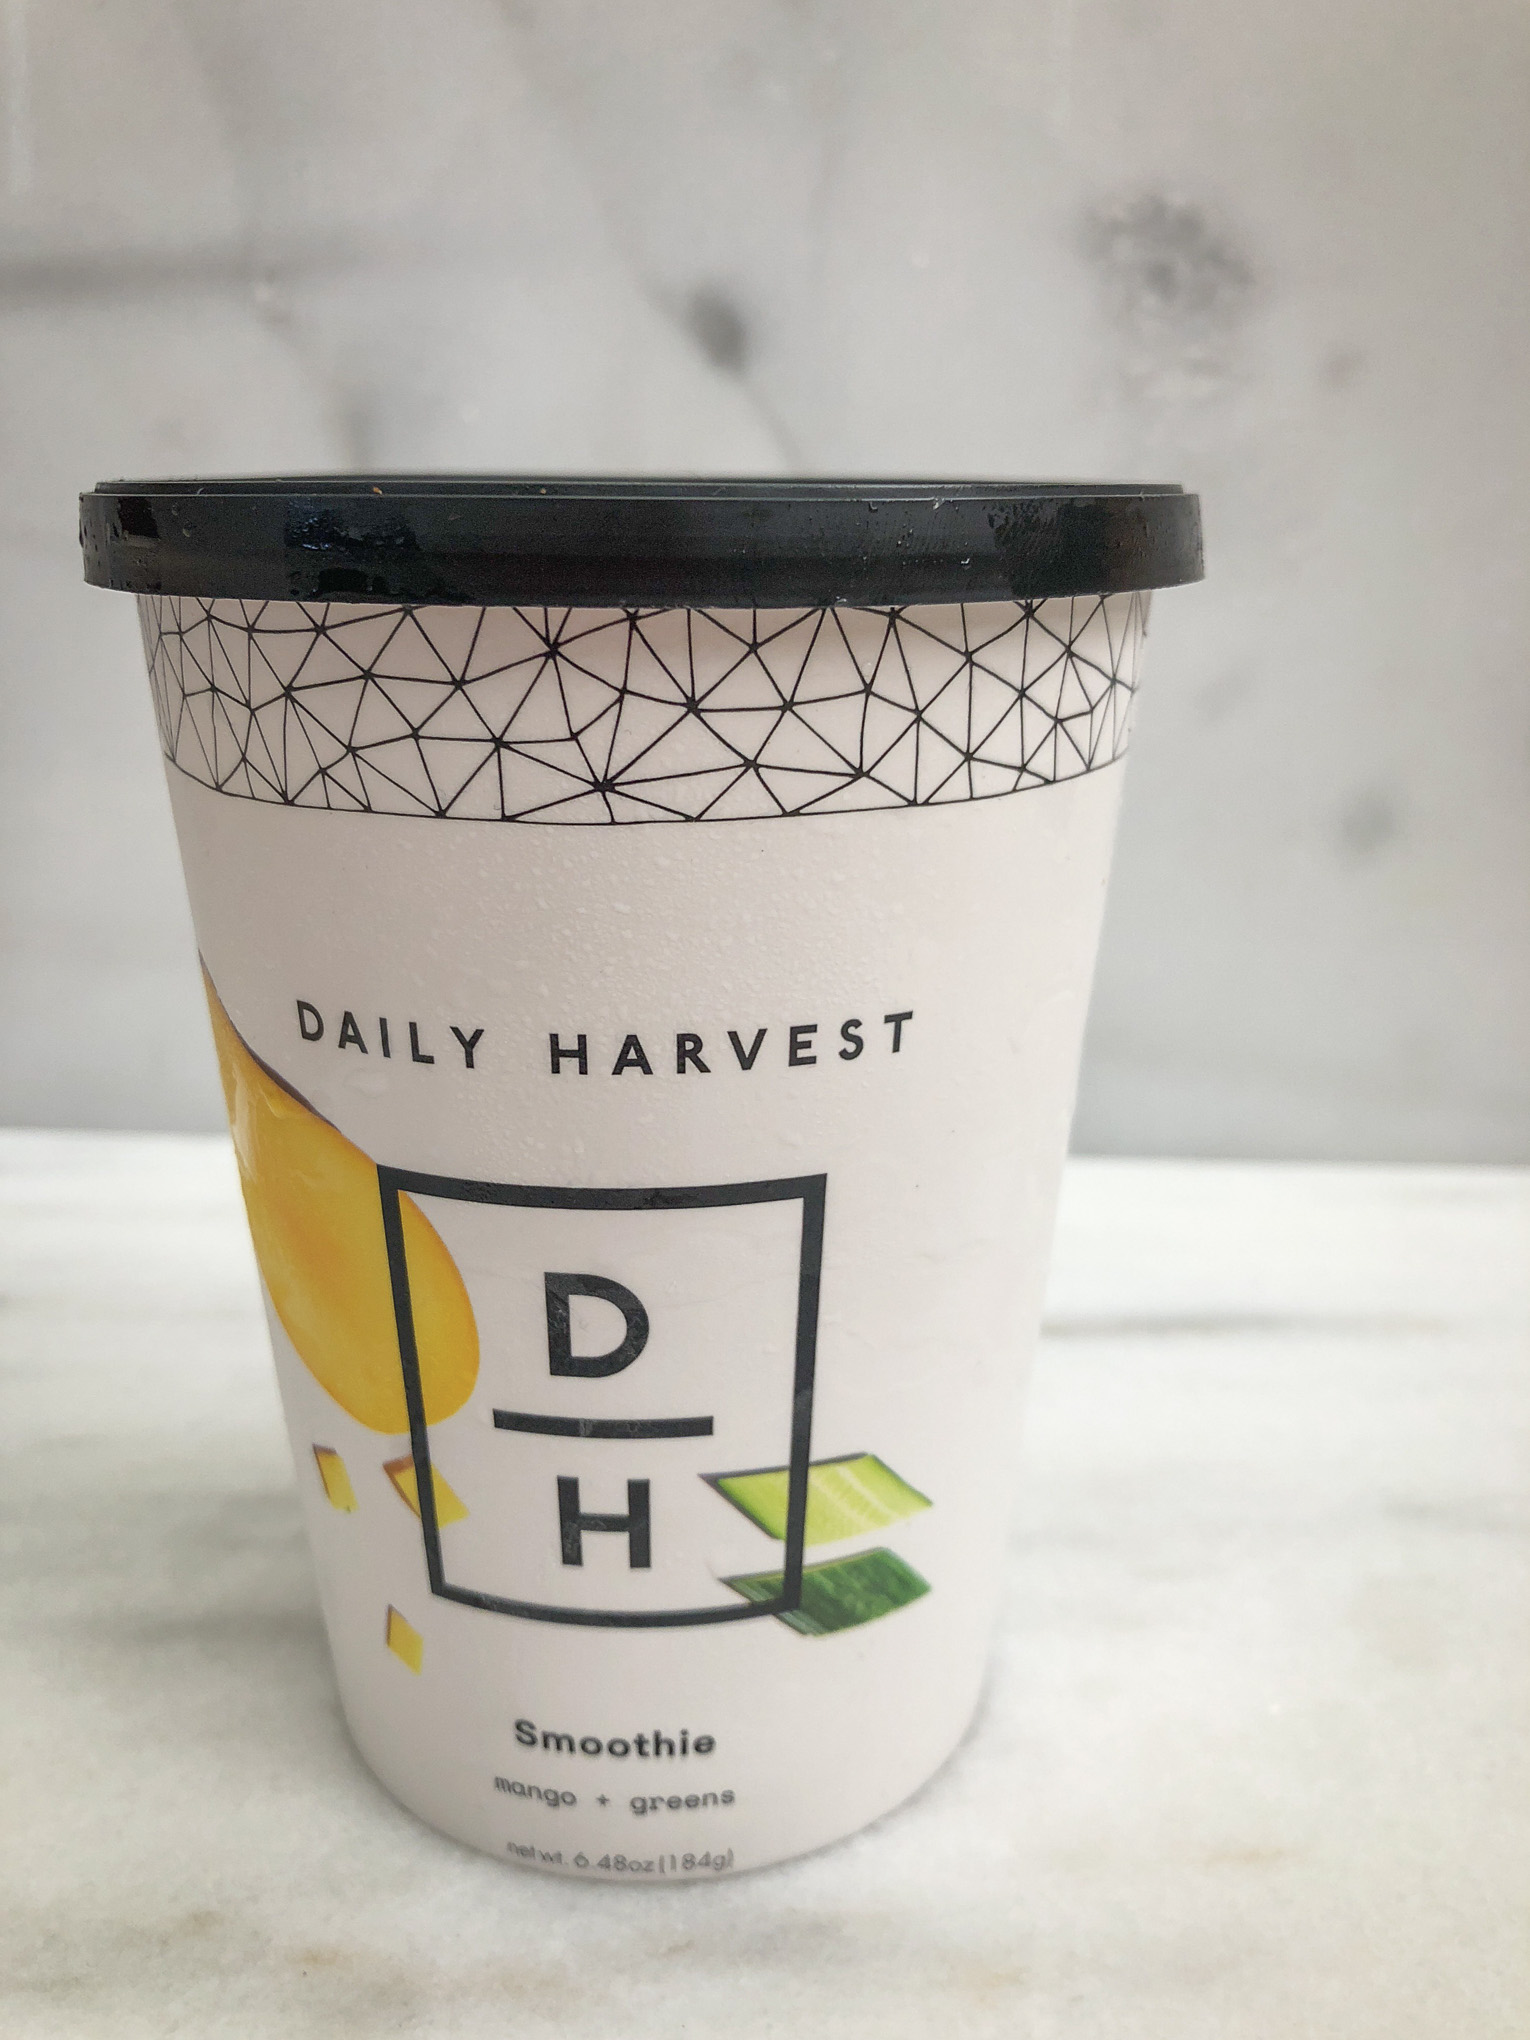 Paper cup with smoothie inside